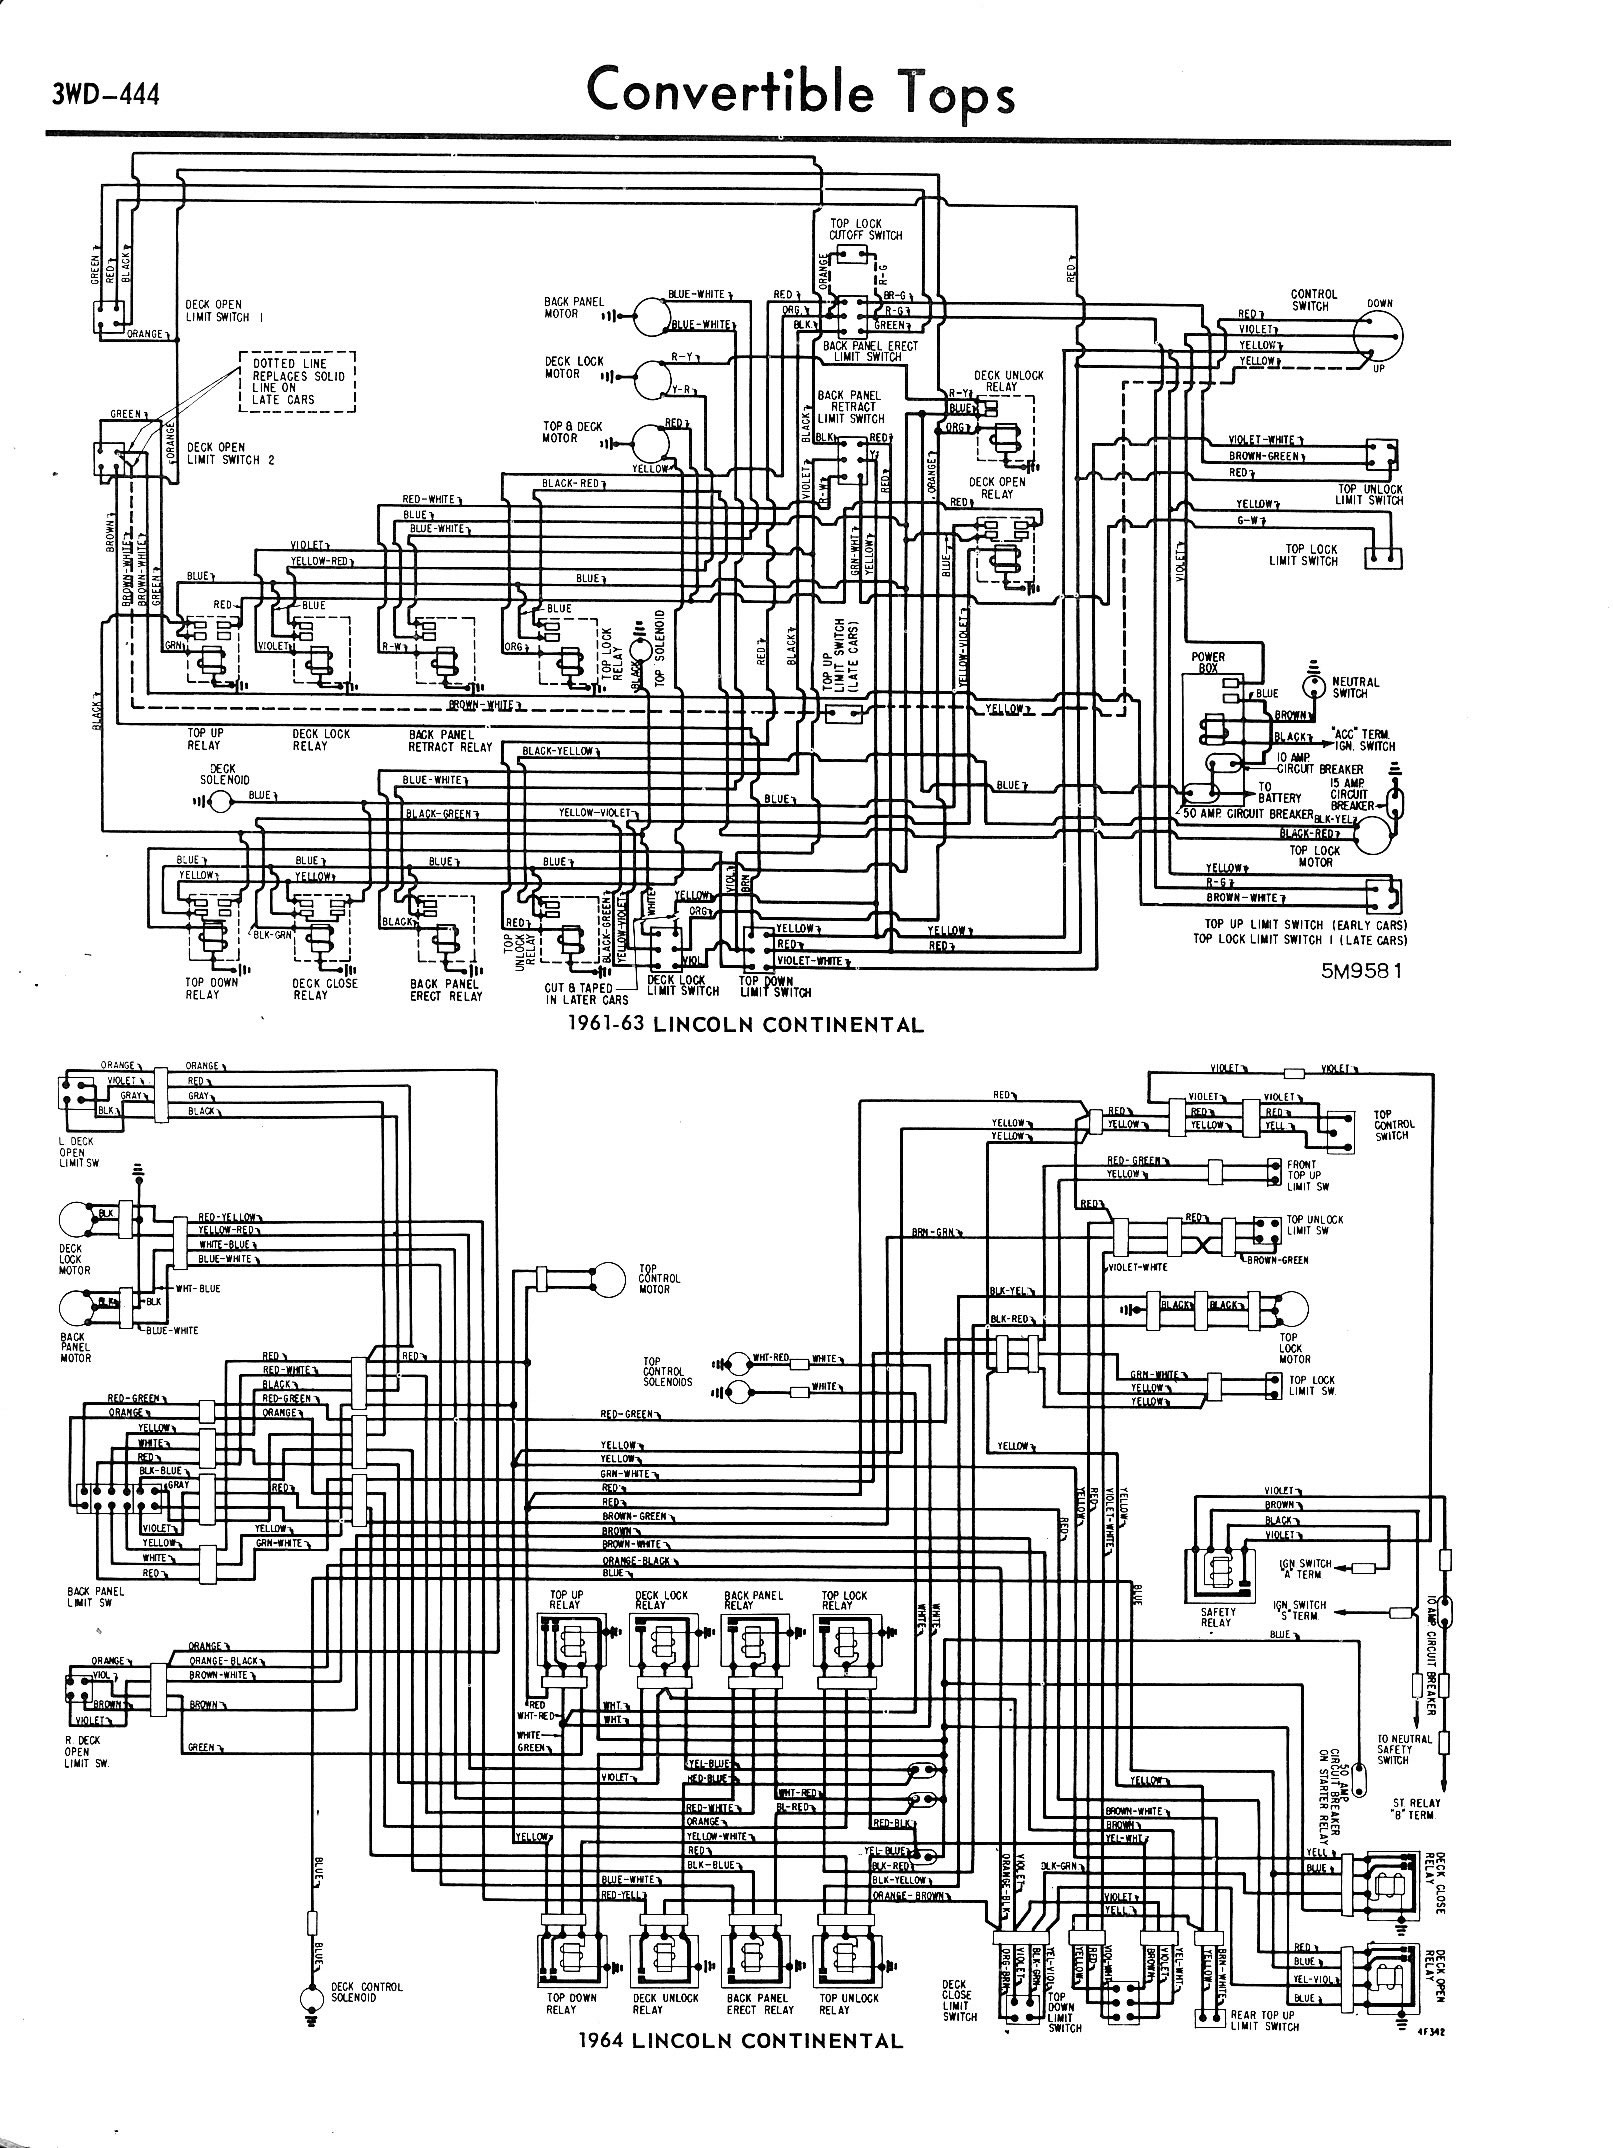 1964 T Bird Wiring Diagram Seat Electrical Diagrams 1955 Thunderbird Ford Rh Wizard Com Convertible